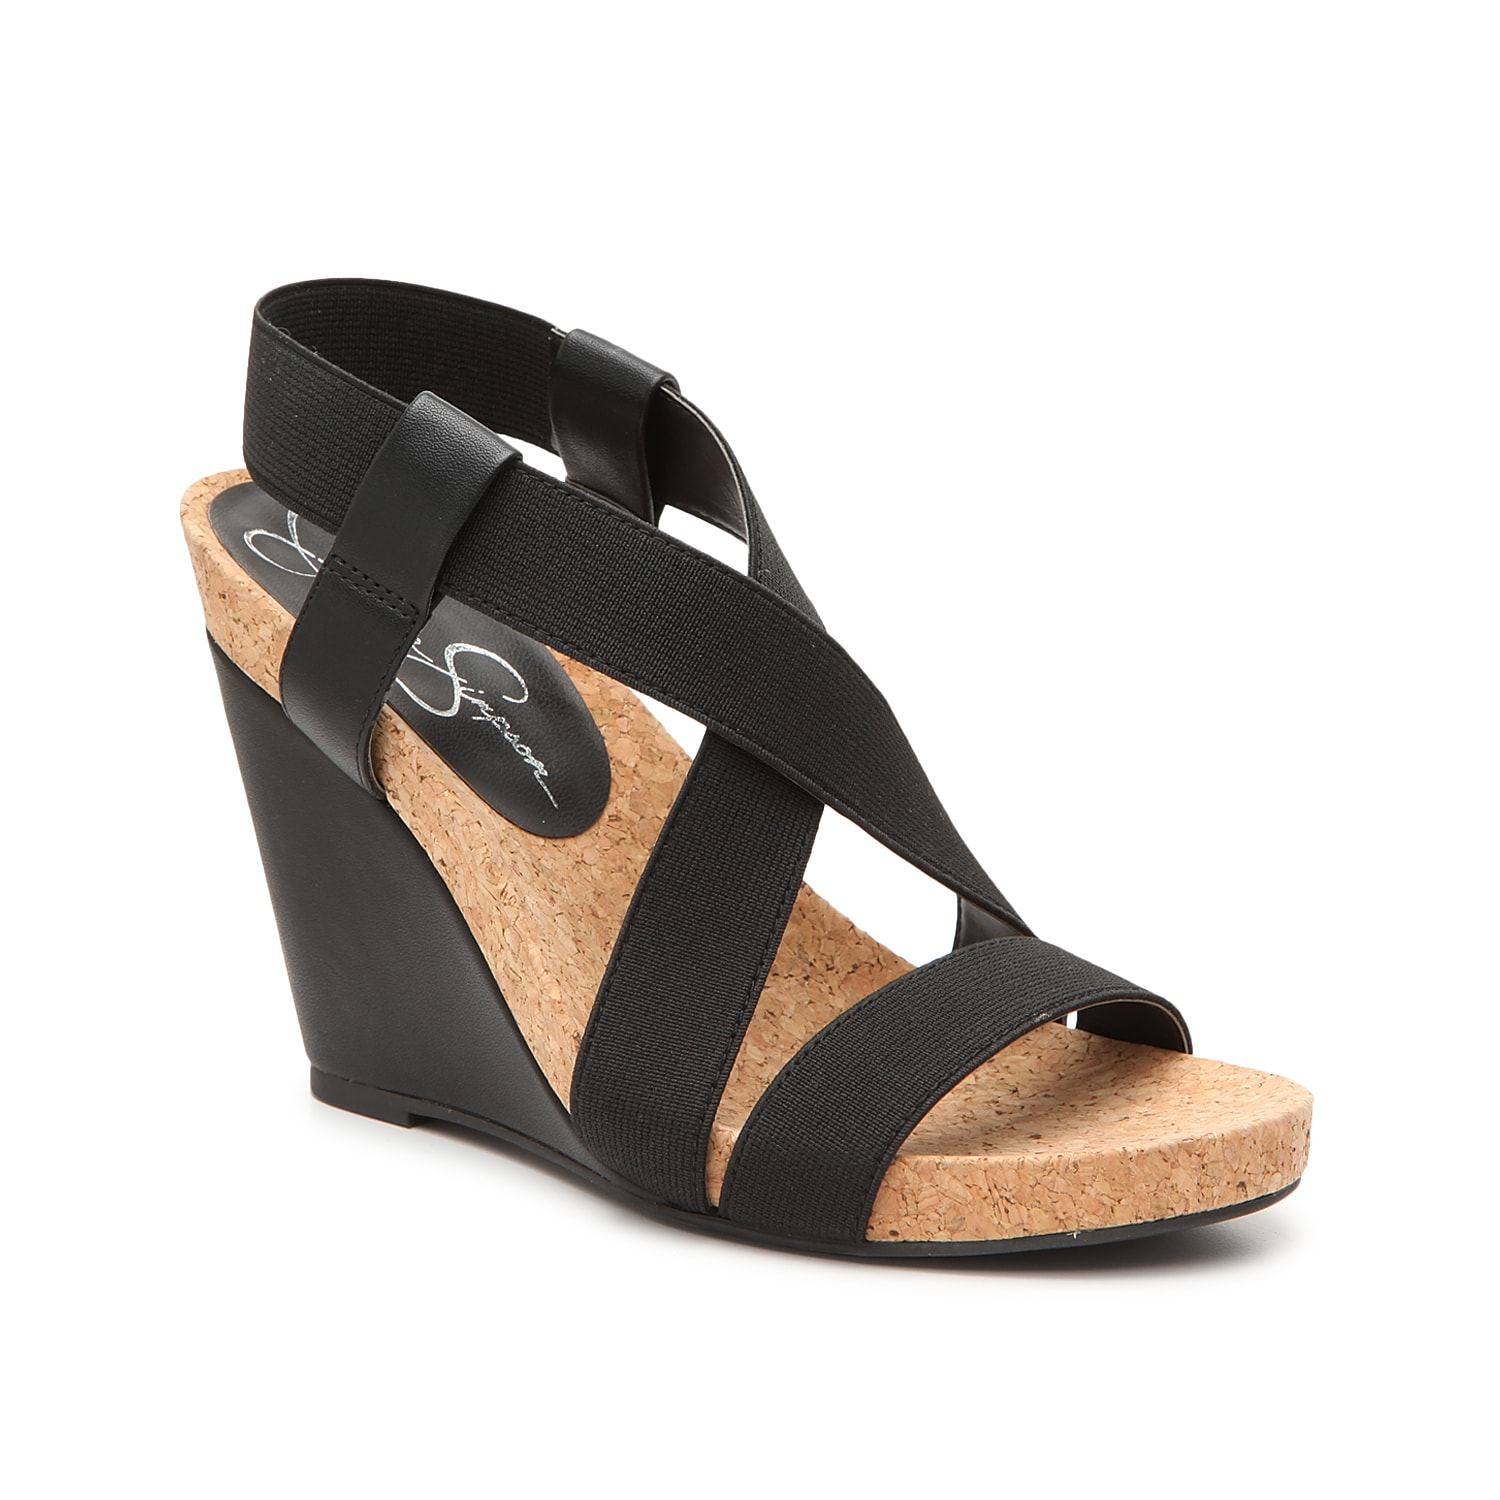 Add textural intrigue to your look with the Brisy sandal from Jessica Simpson. These wedges feature a stretchy slingback strap for a custom fit and are finished with a cork footbed for comfort and ease.